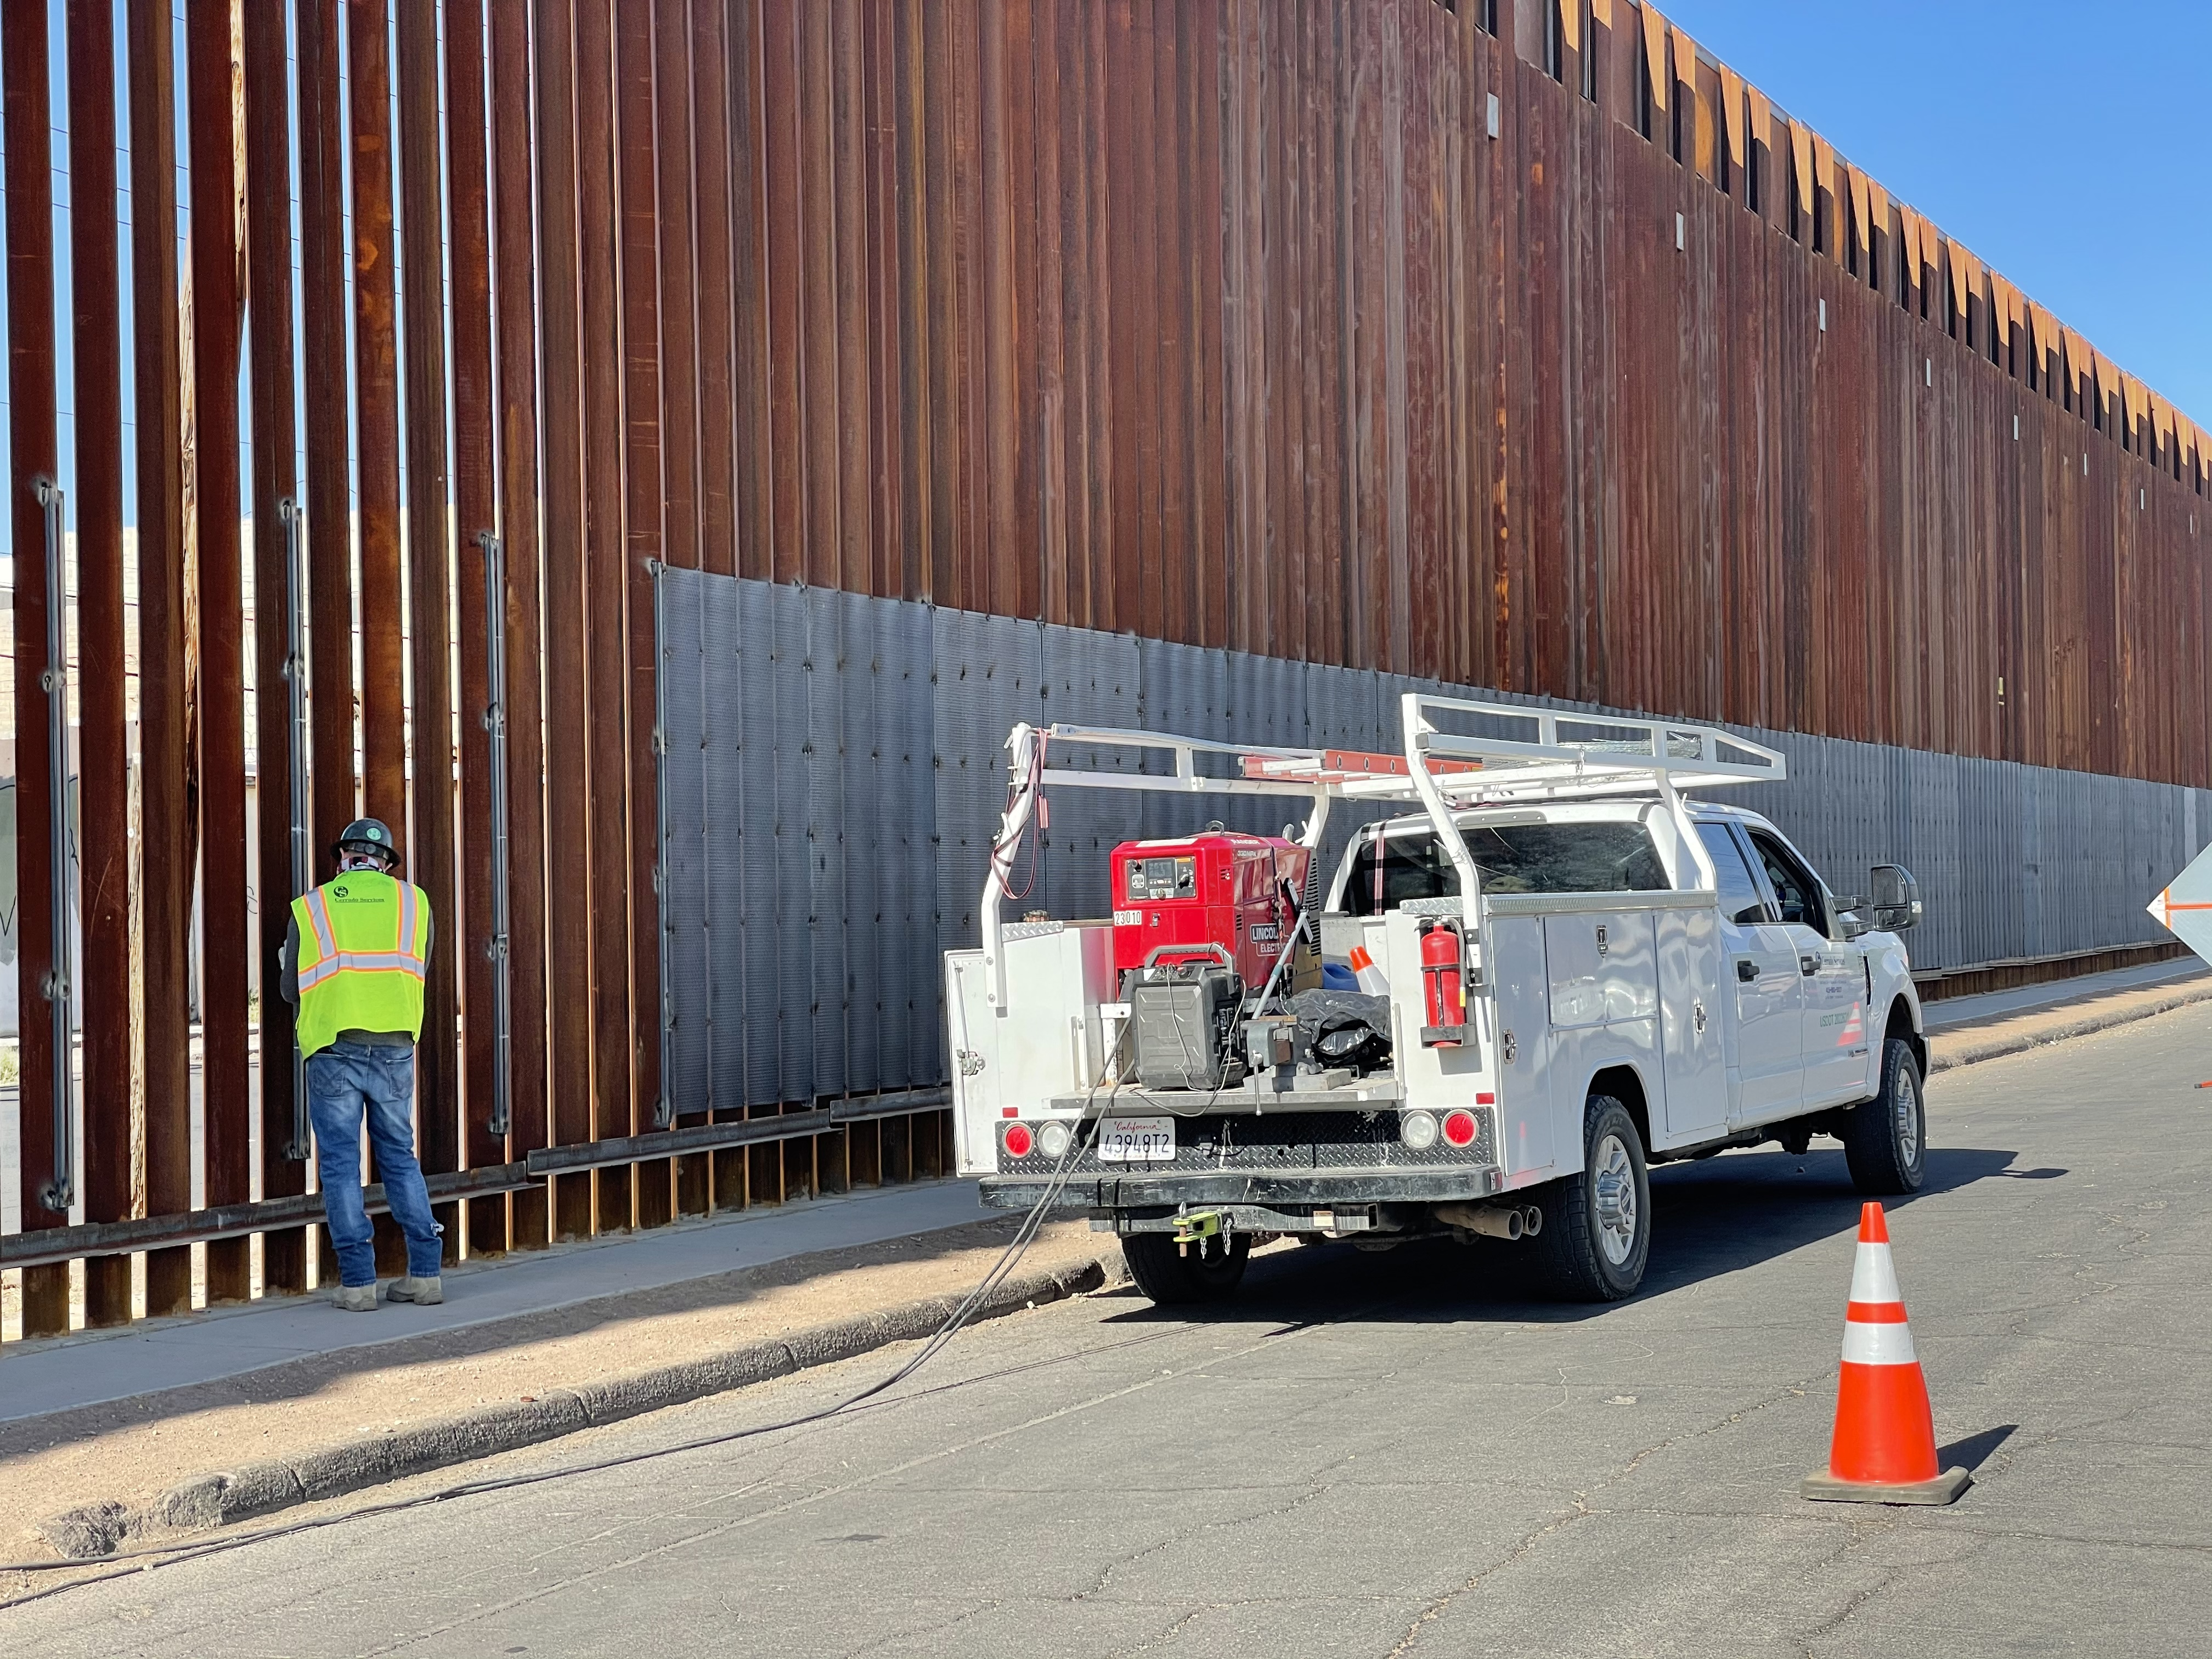 Border Wall In Calexico Gets Reinforced With New Sheets Of Metal Mesh